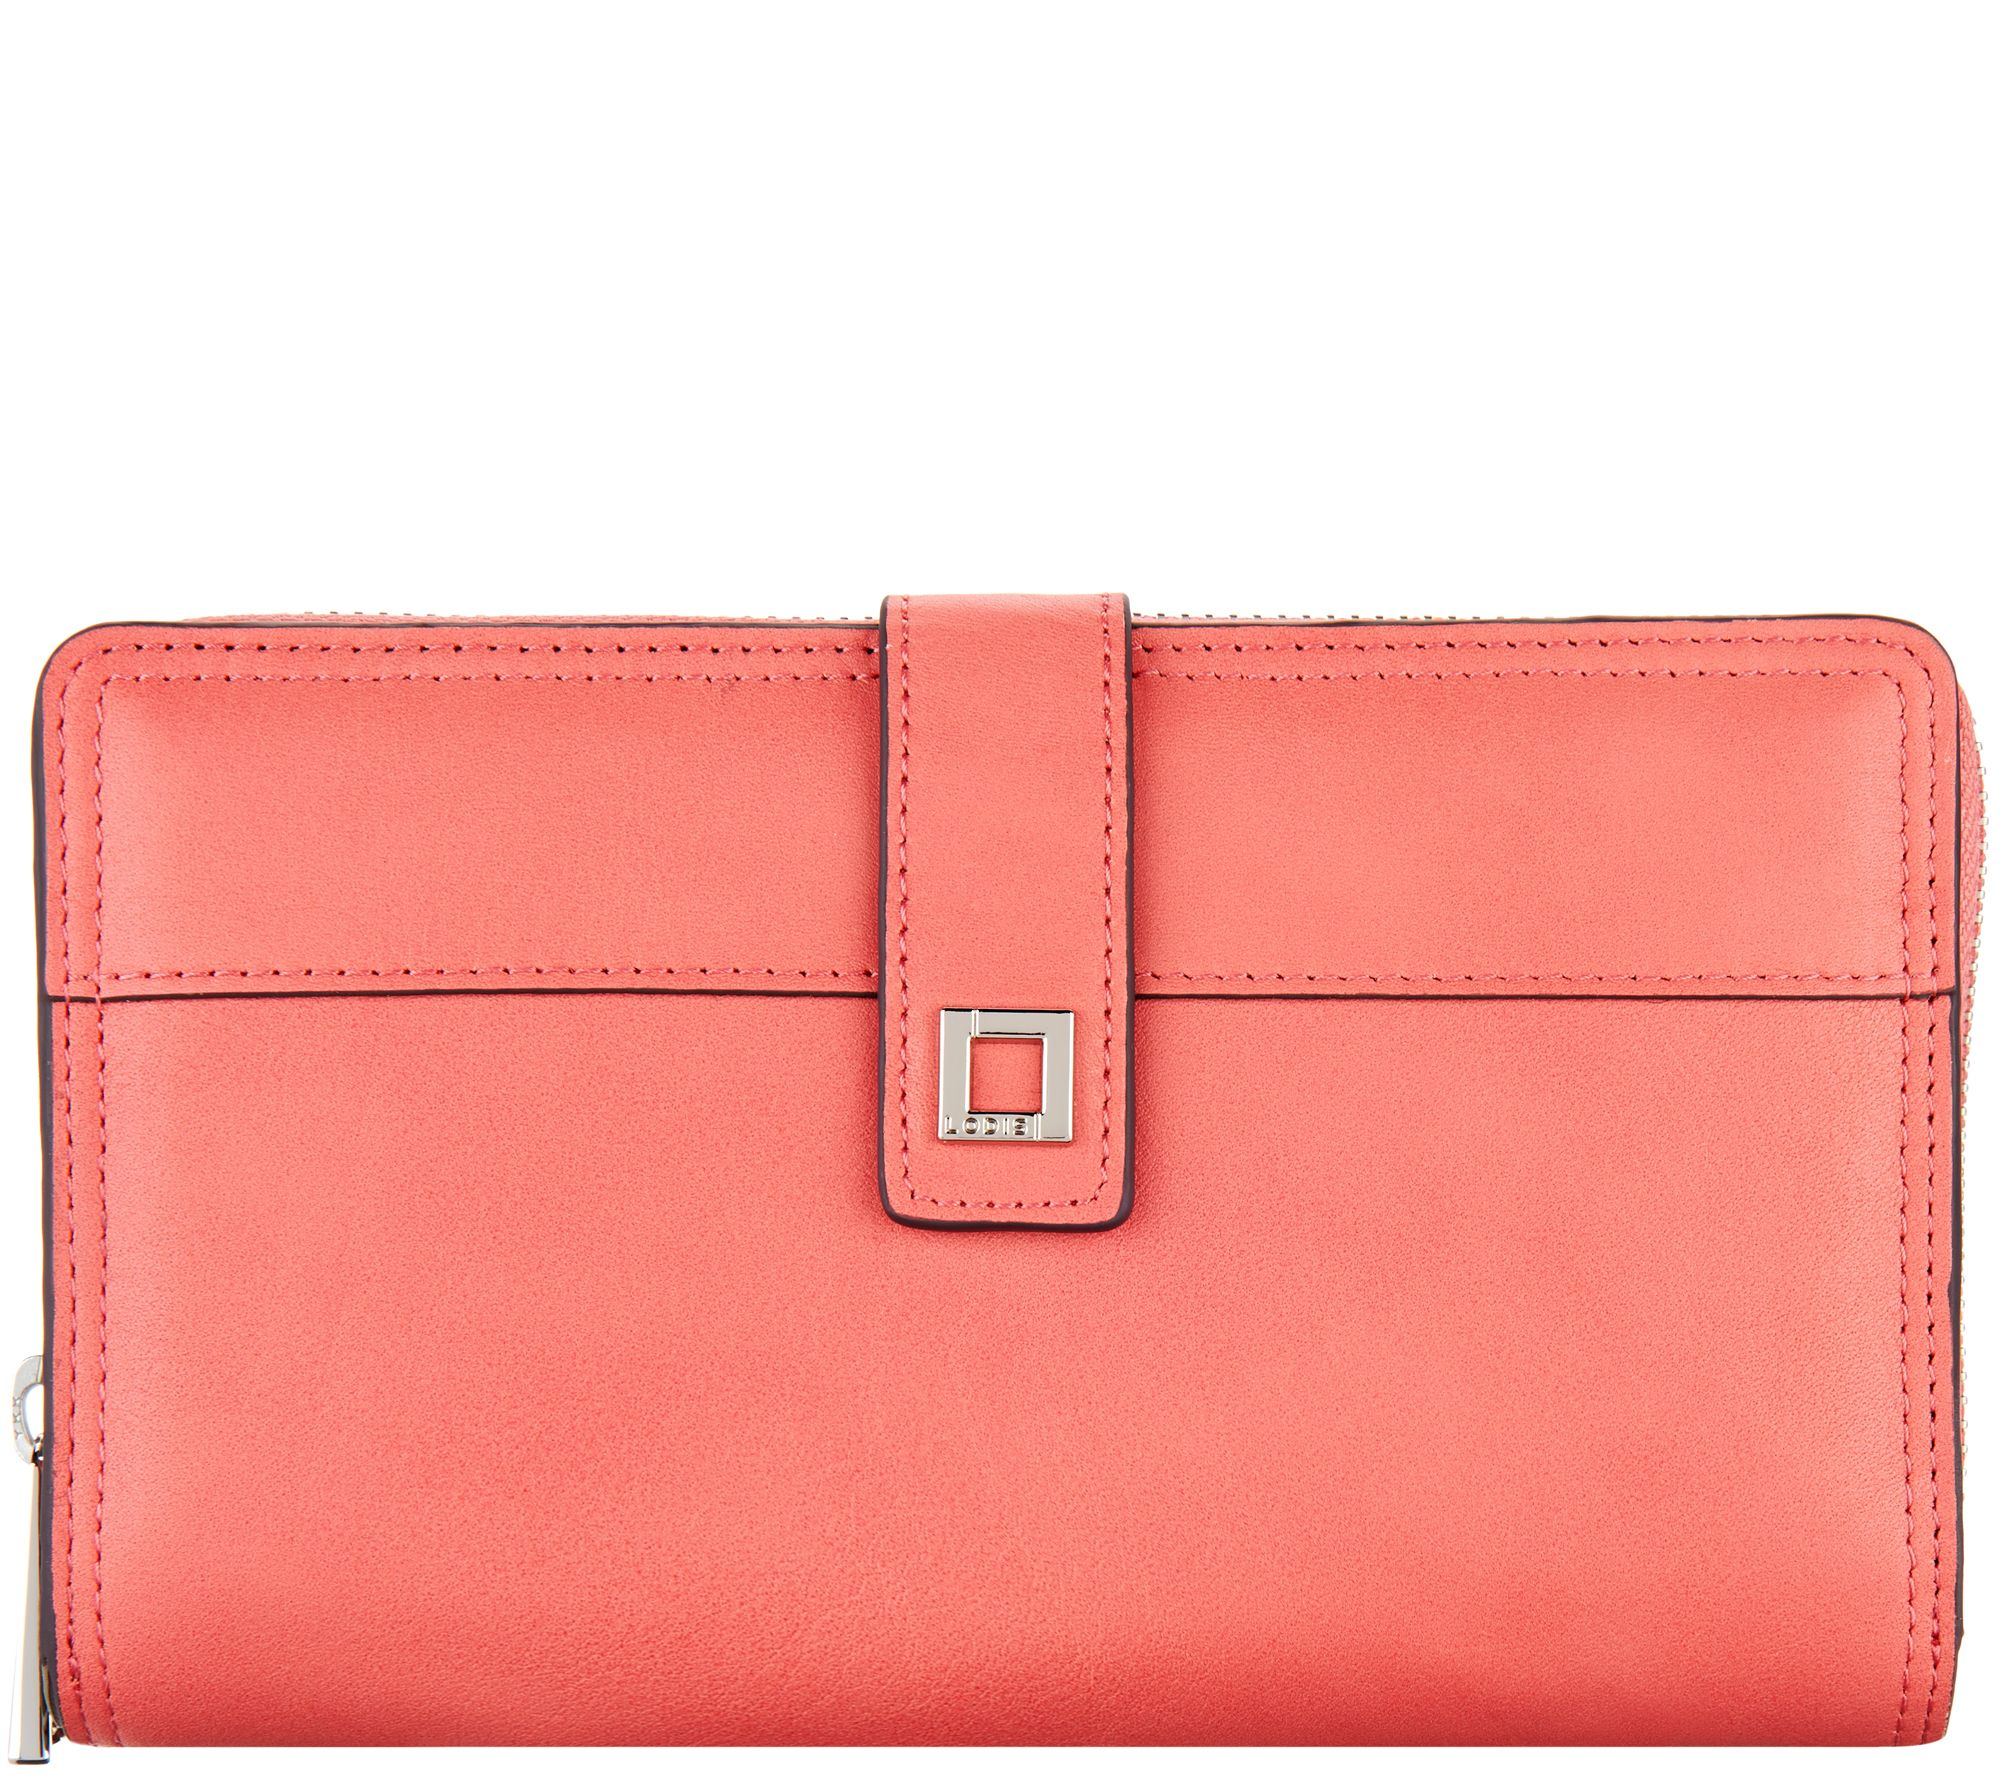 LODIS Italian Leather Large RFID Checkbook Zip Wallet - A277890 — QVC.com